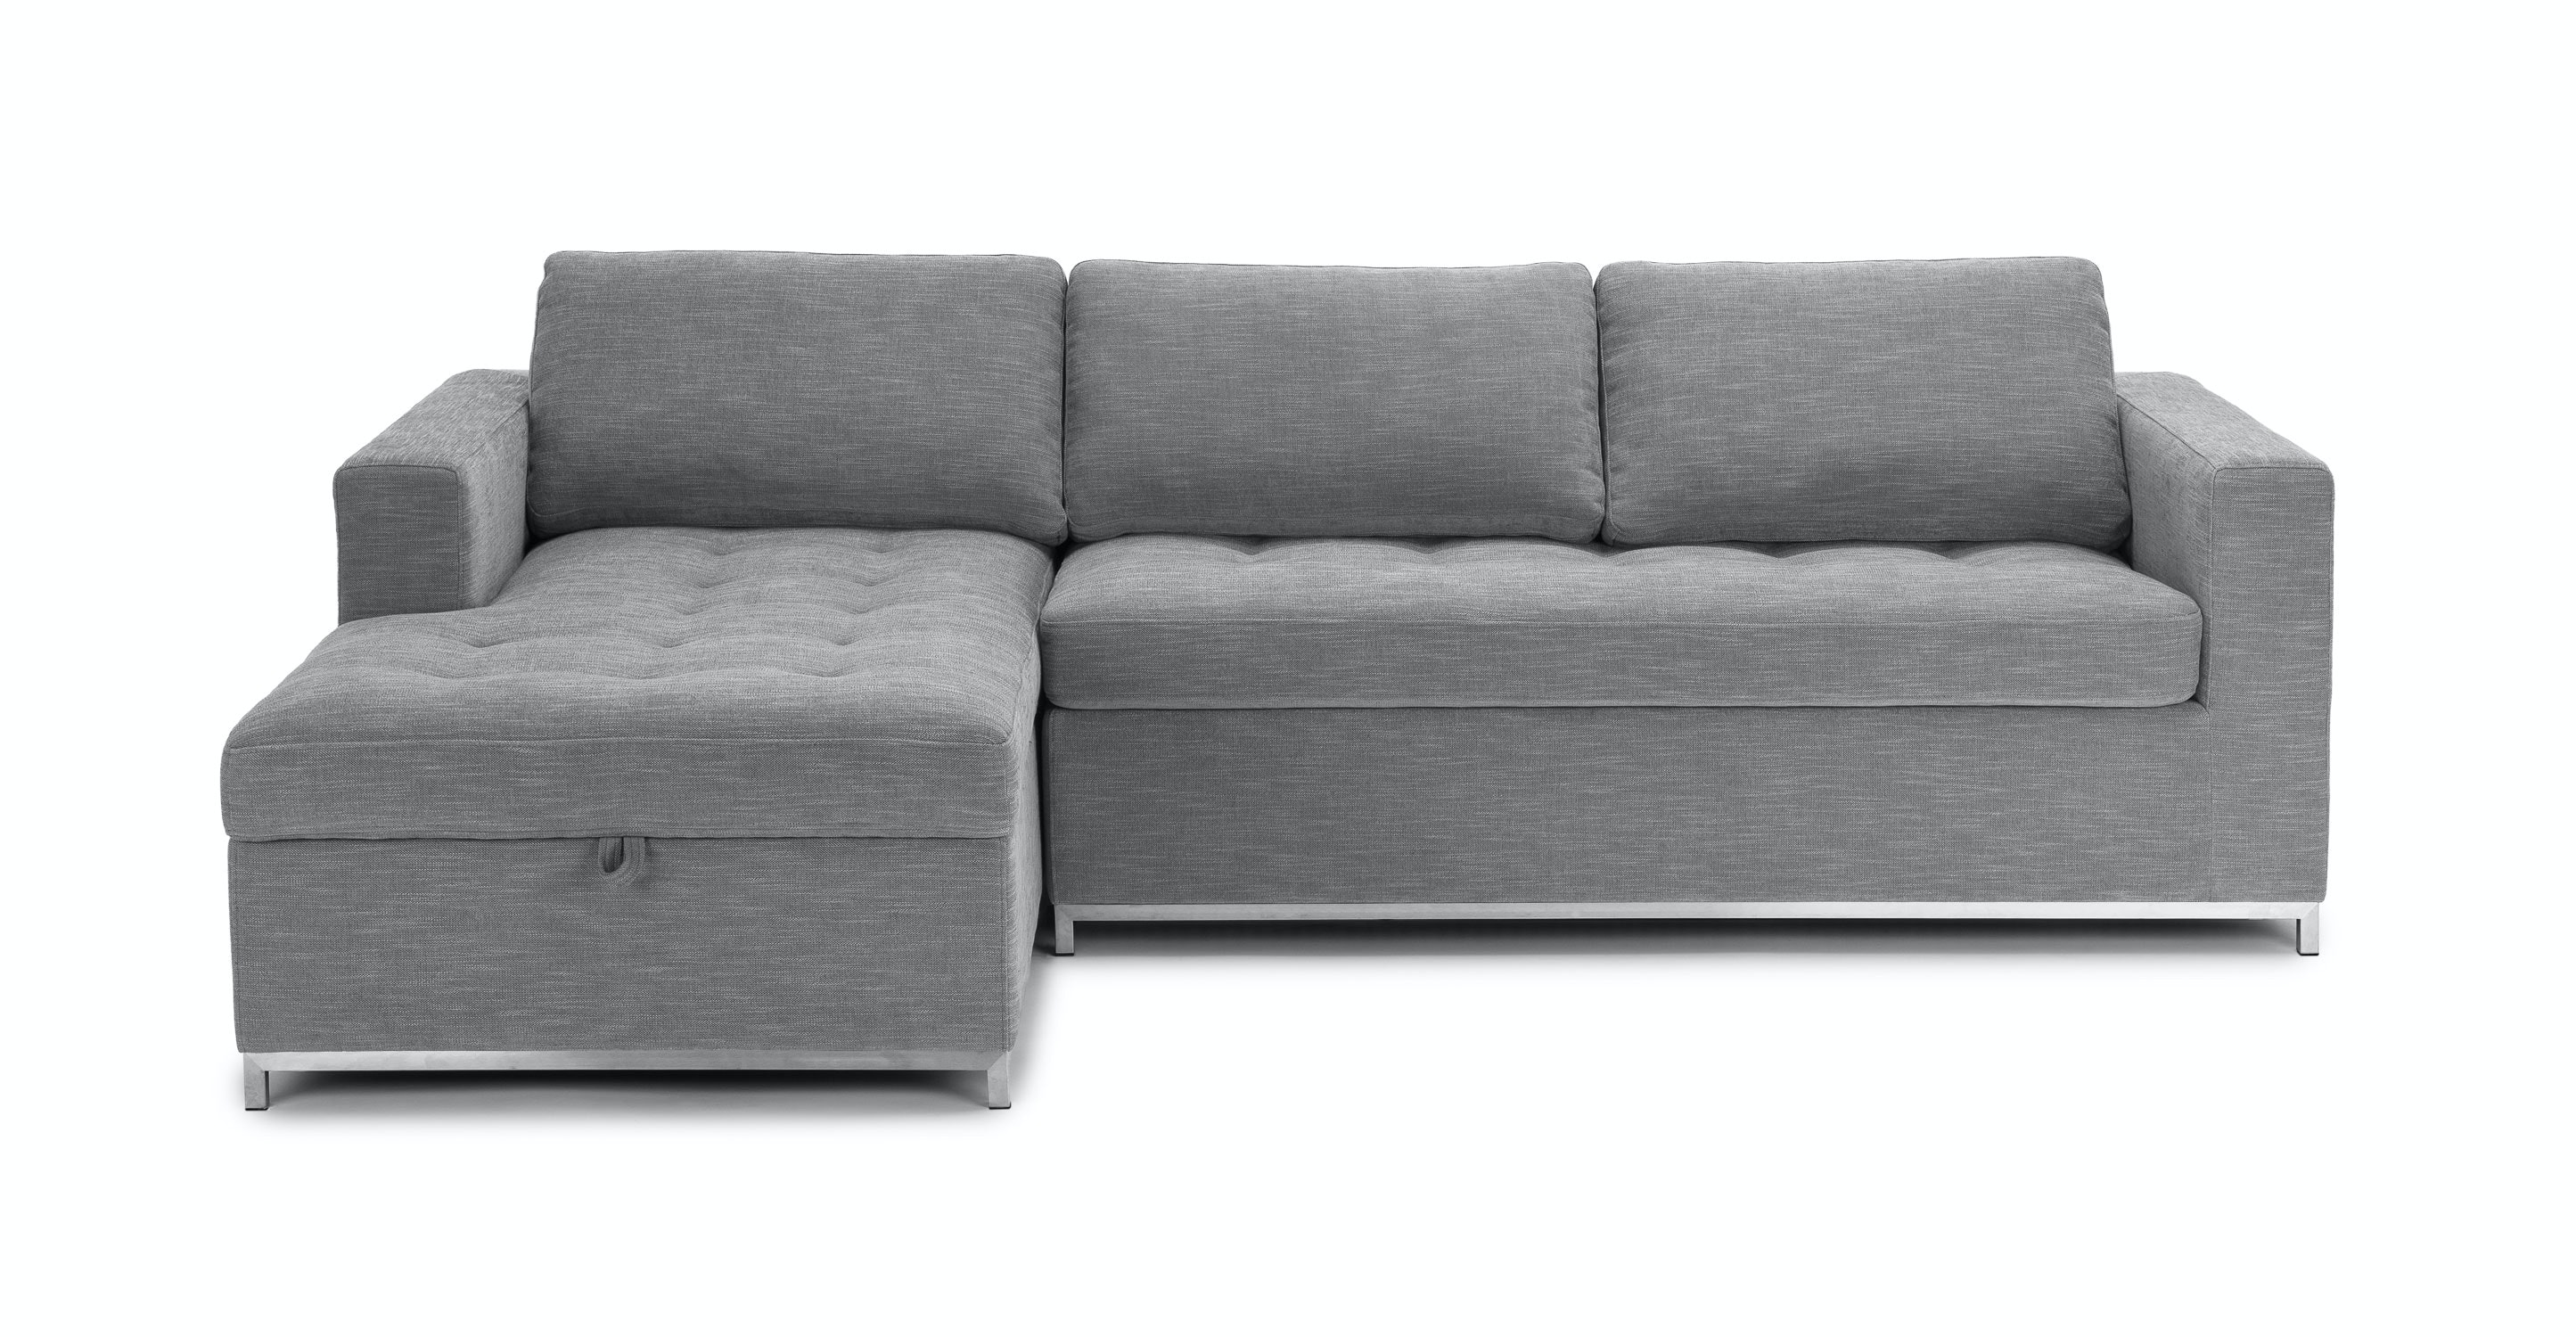 Merveilleux Soma Dawn Gray Left Sofa Bed